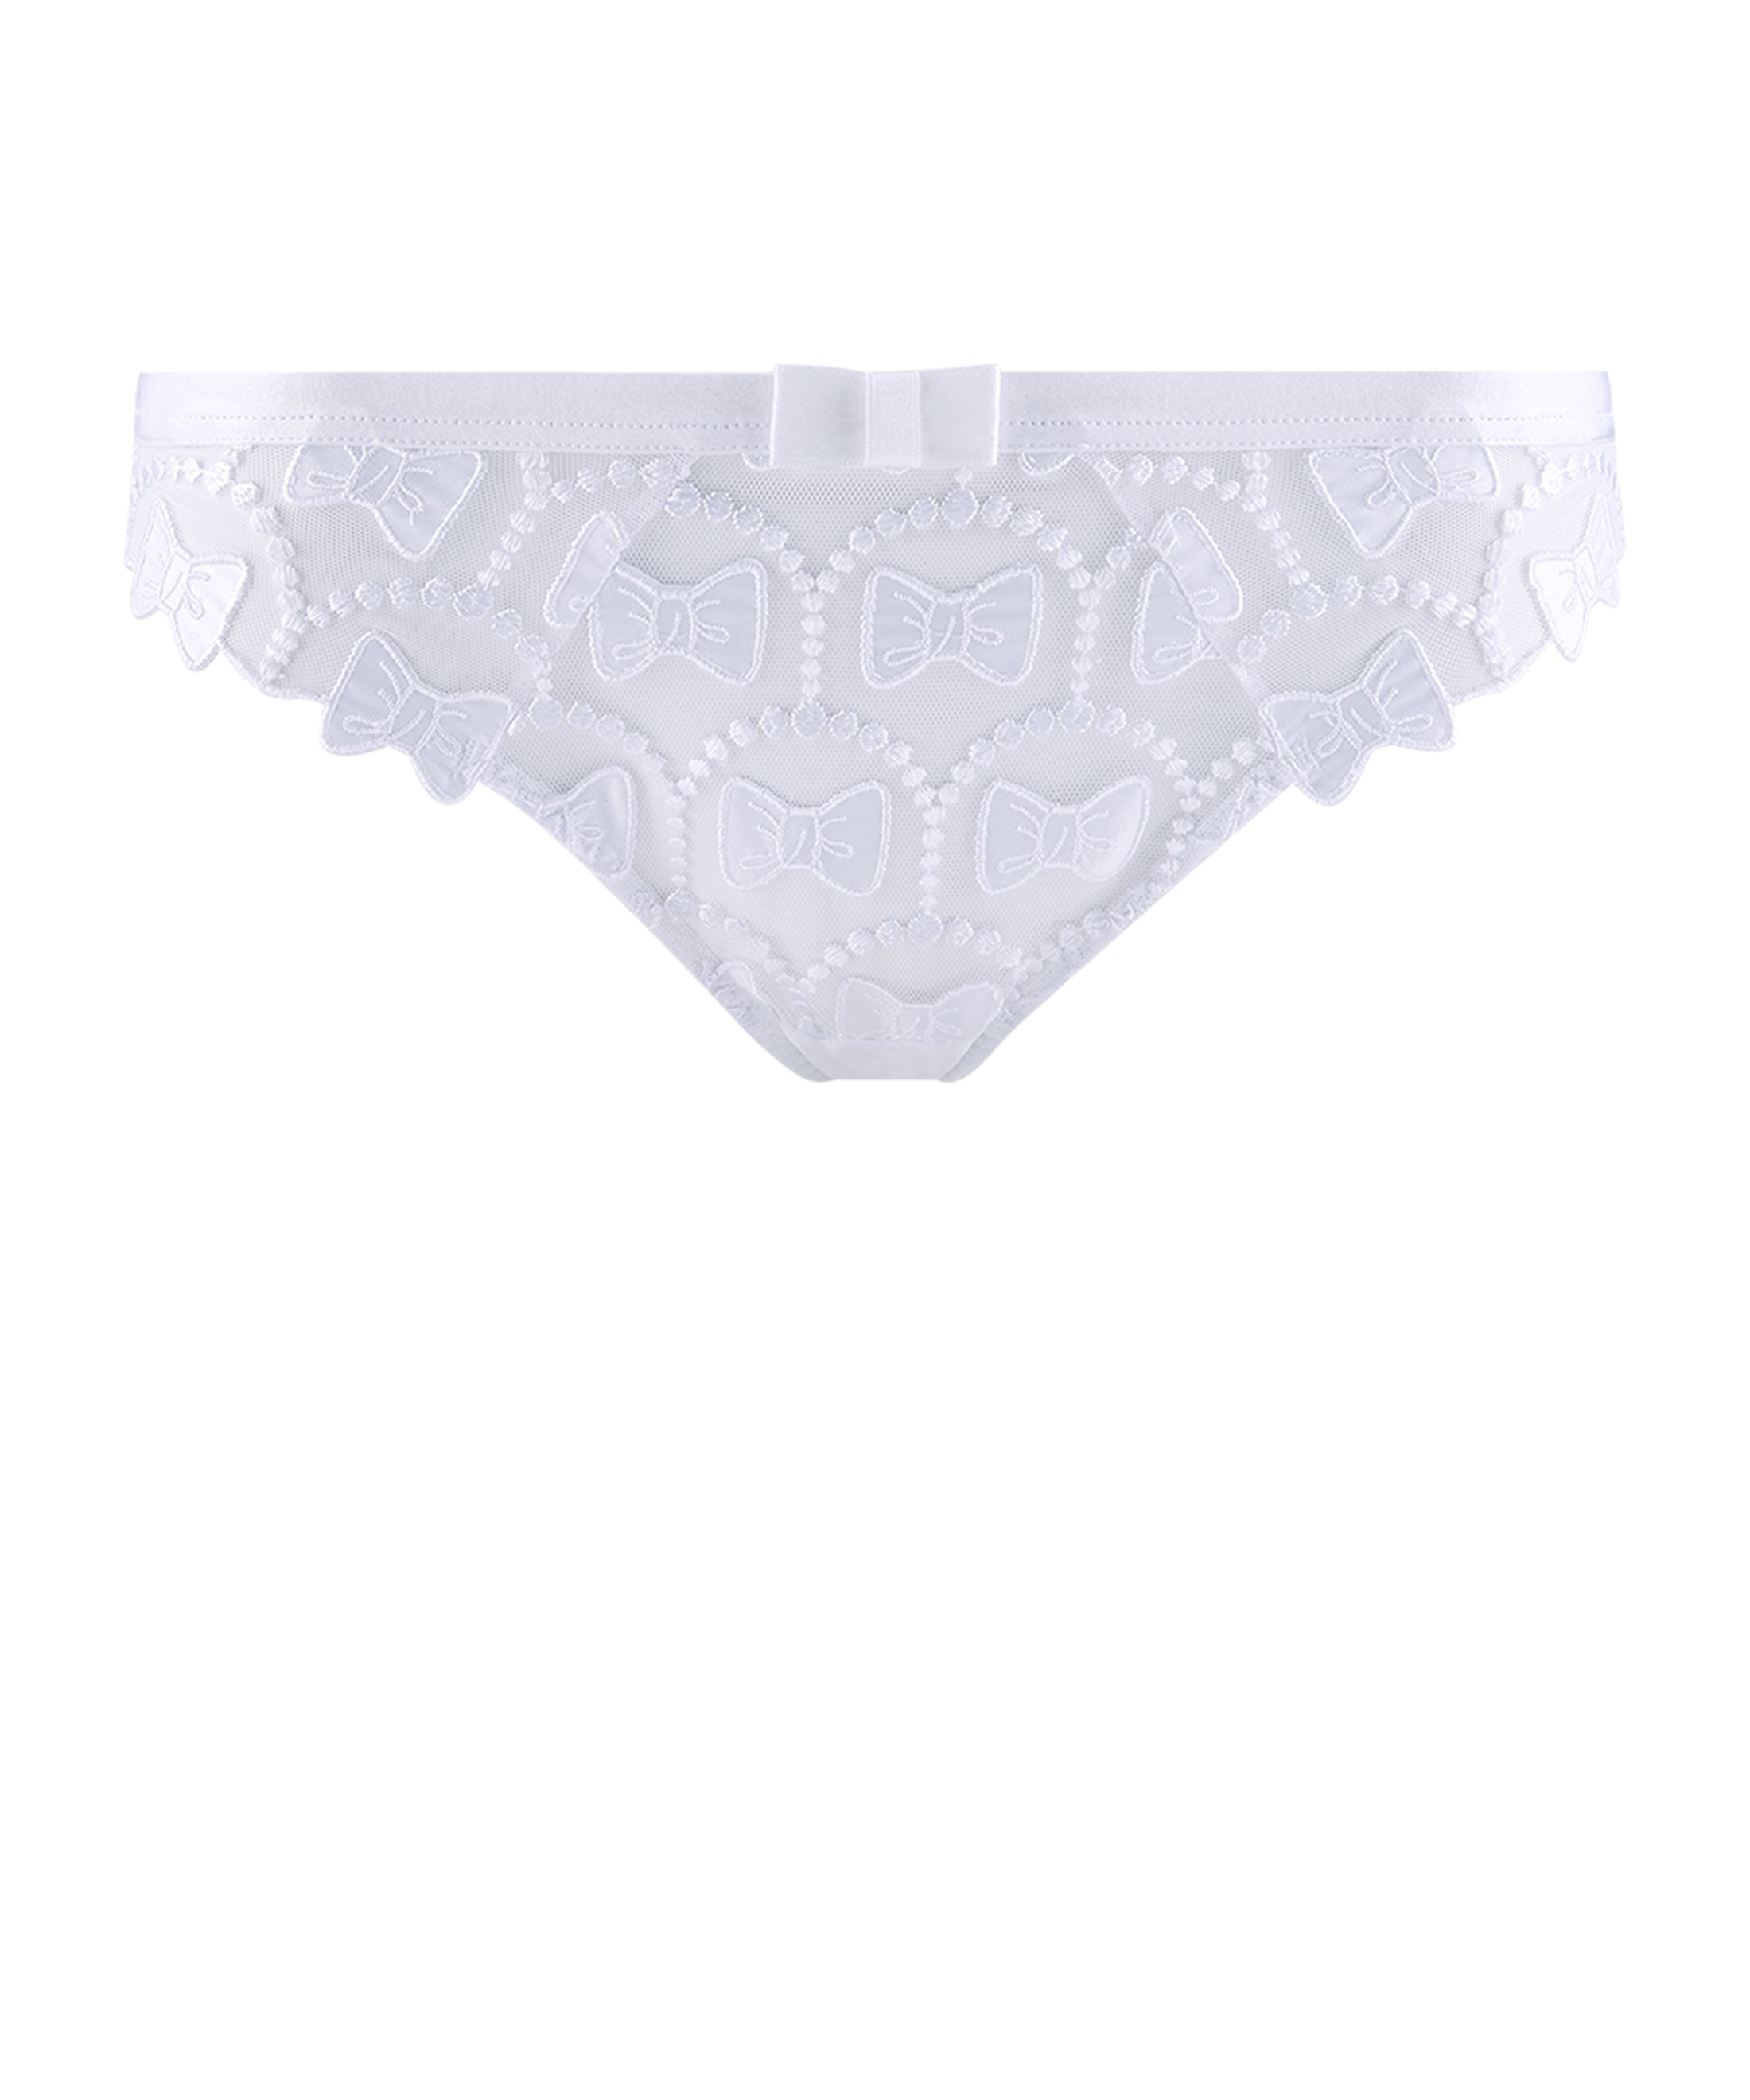 THE BOW COLLECTION Culotte Brésilienne Blanc | Aubade